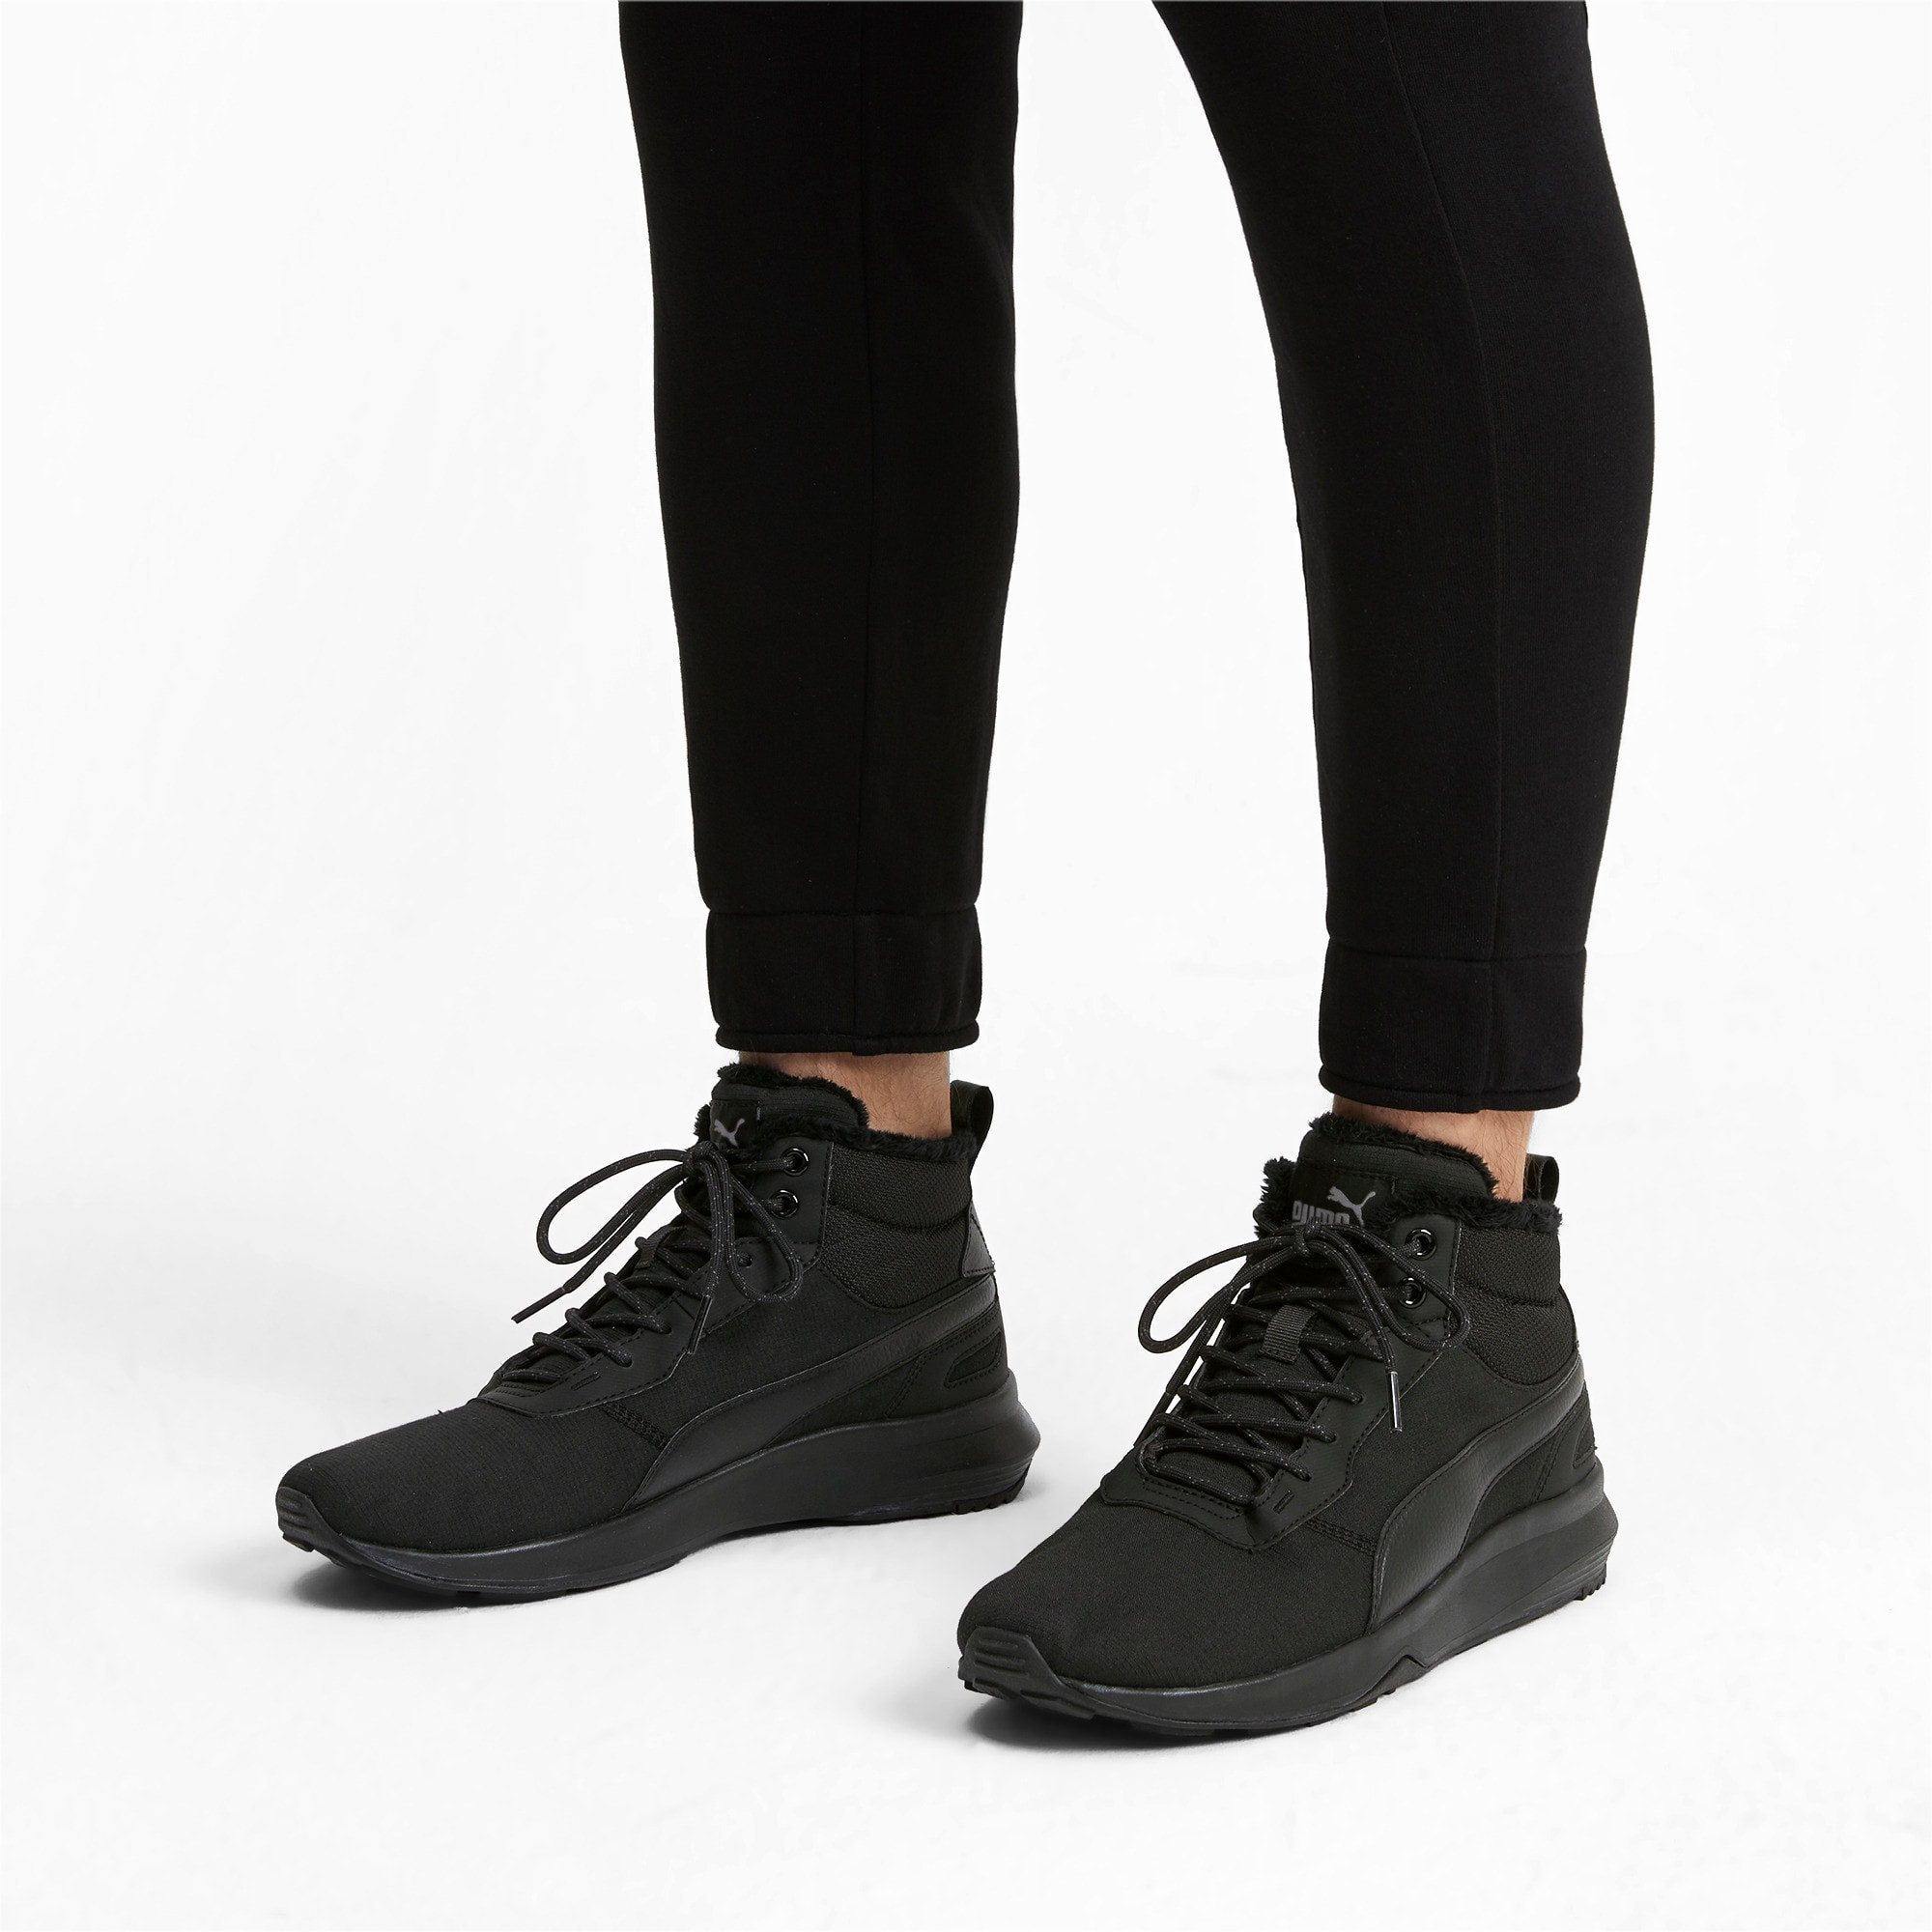 Thumbnail 2 of Activate Mid-Cut Boots, Puma Black-Puma Black, medium